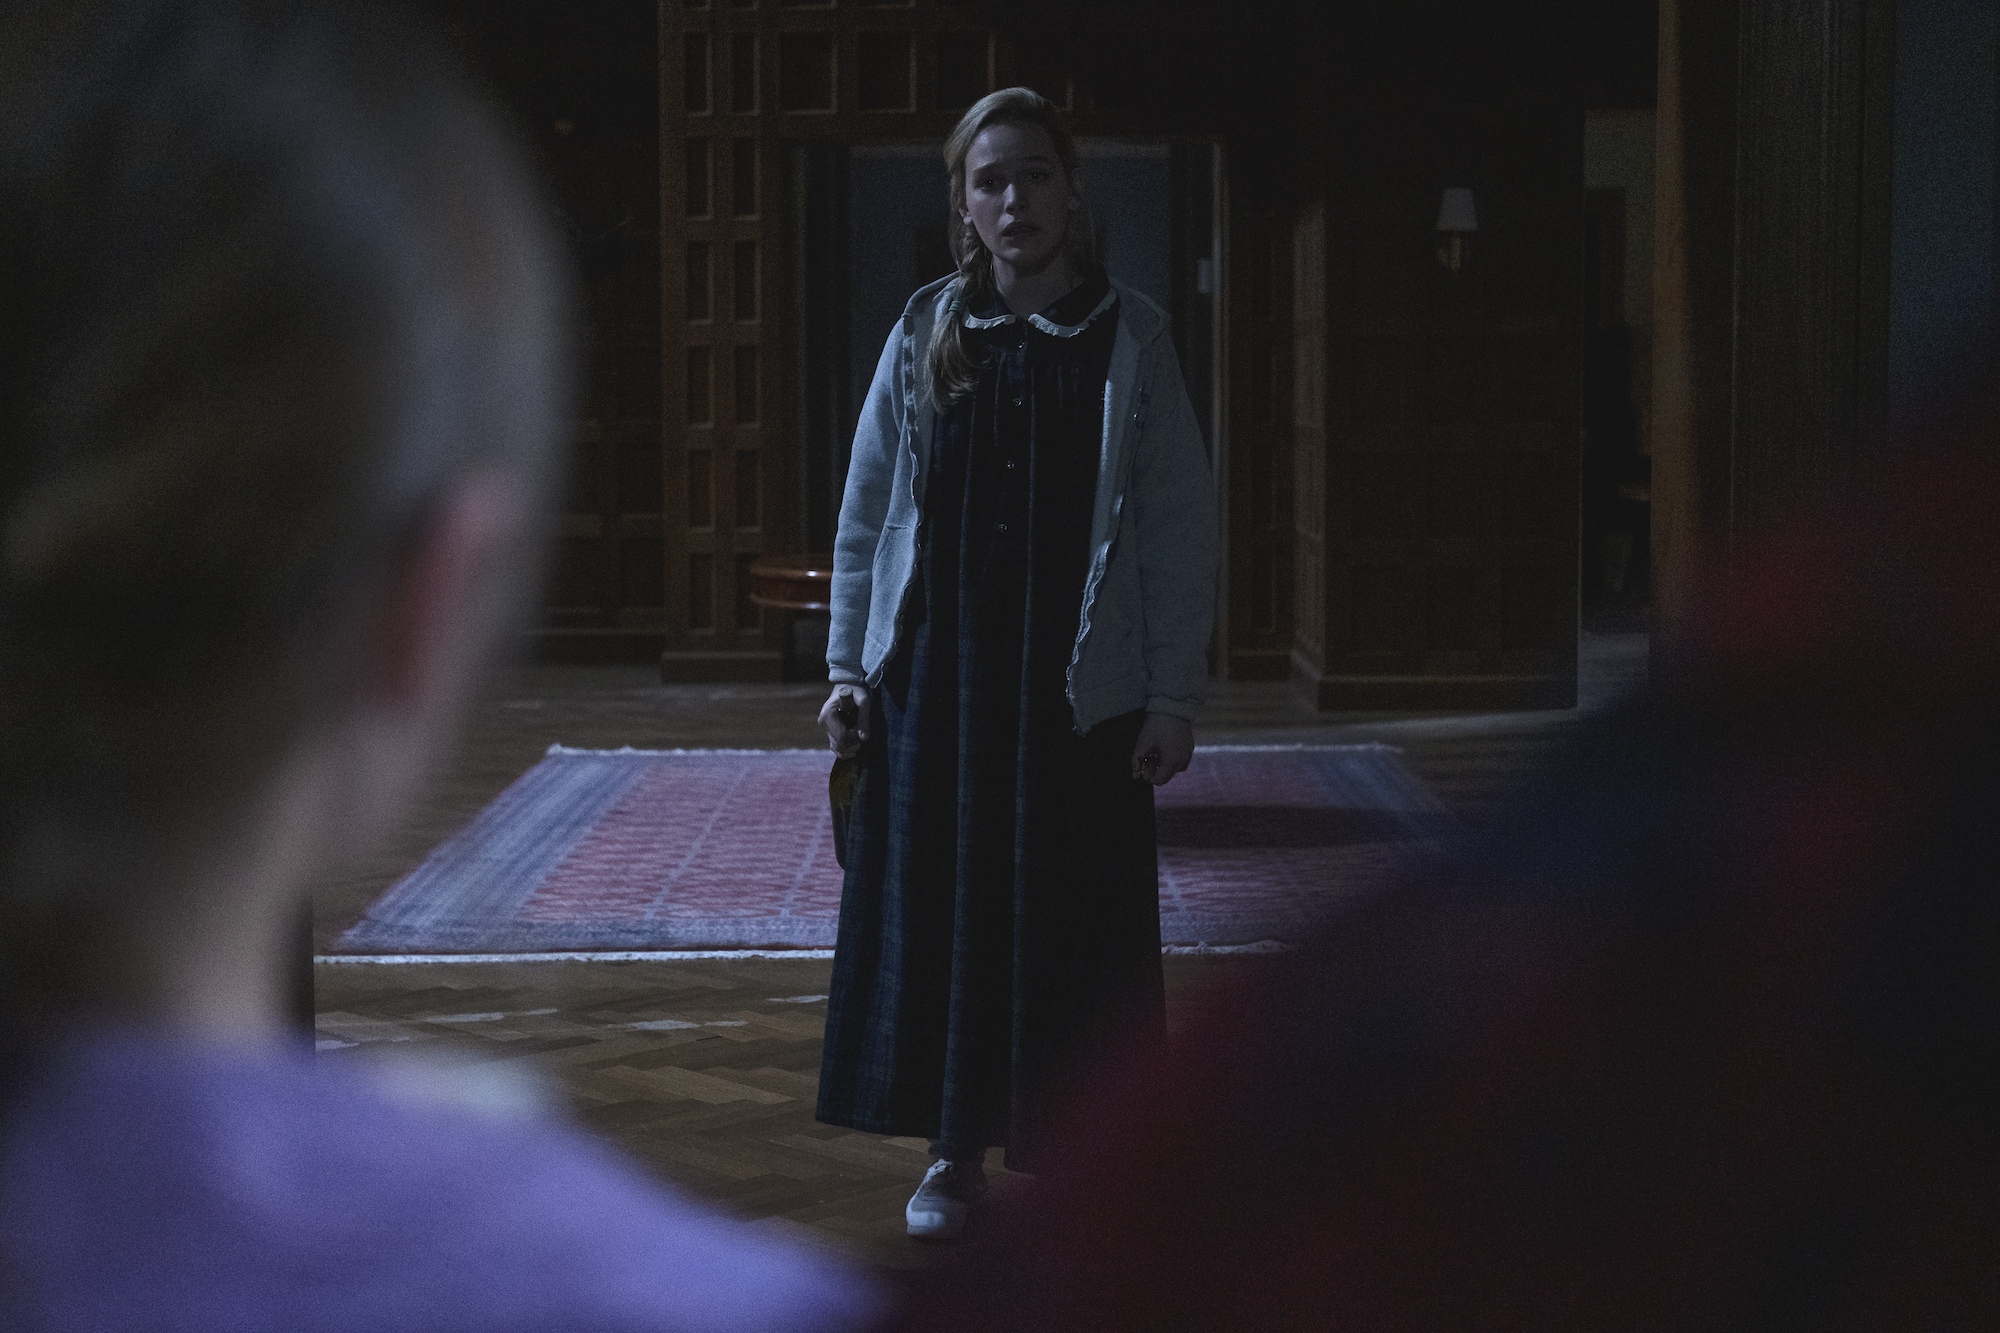 Dani in 'THE HAUNTING OF BLY MANOR'